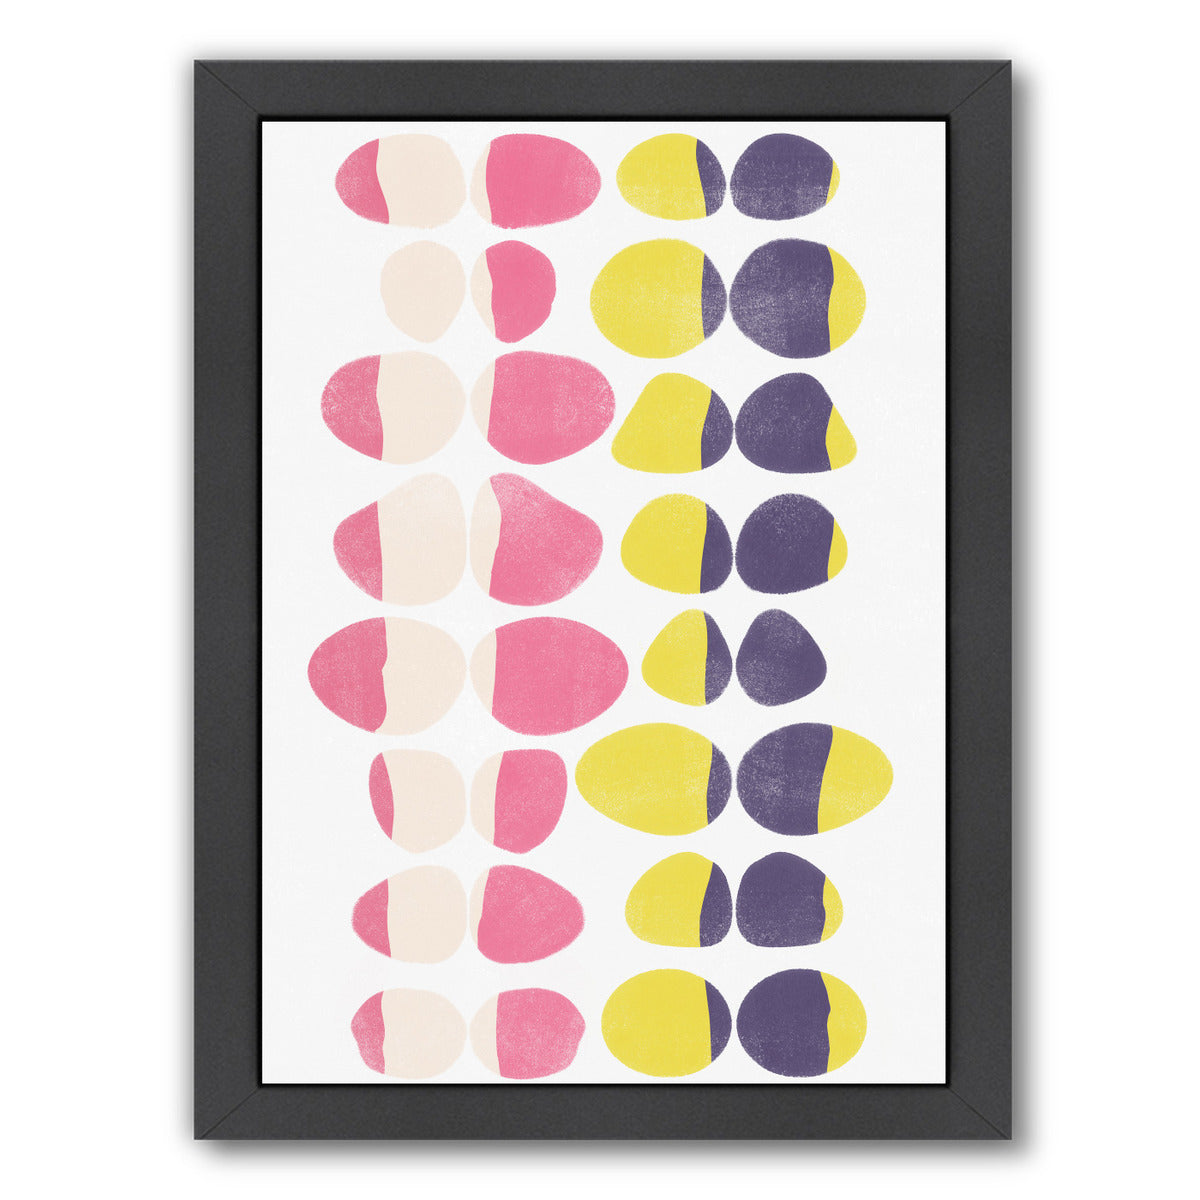 Painted Pebbles 1 by Garima Dhawan Black Framed Print - Wall Art - Americanflat